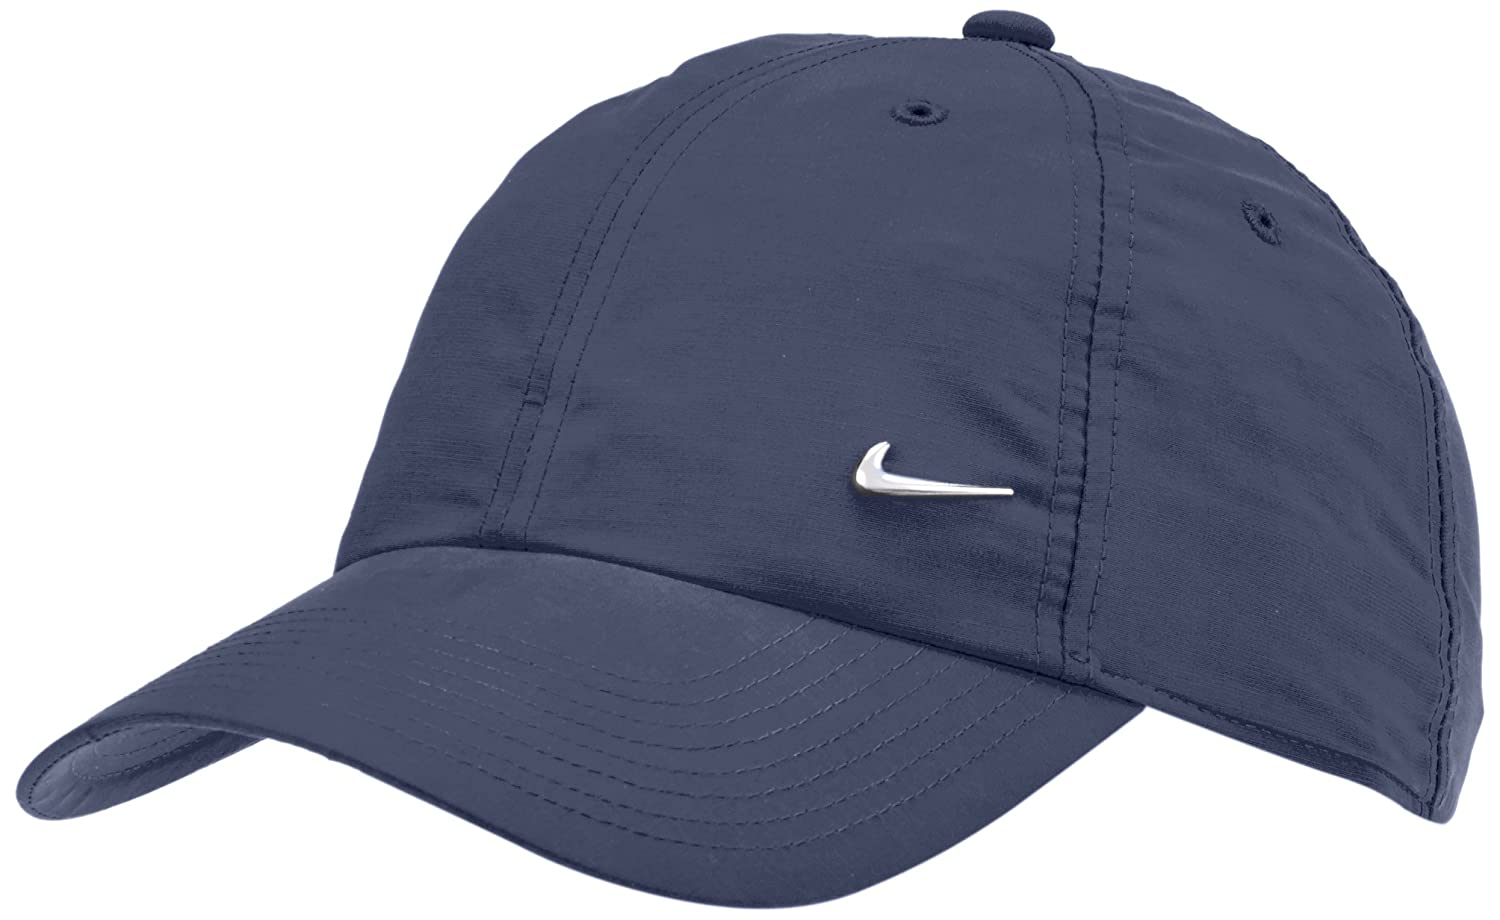 7349f8c541e Buy Nike Heritage Cap (Obsidian Metallic Silver) Online at Low Prices in  India - Amazon.in